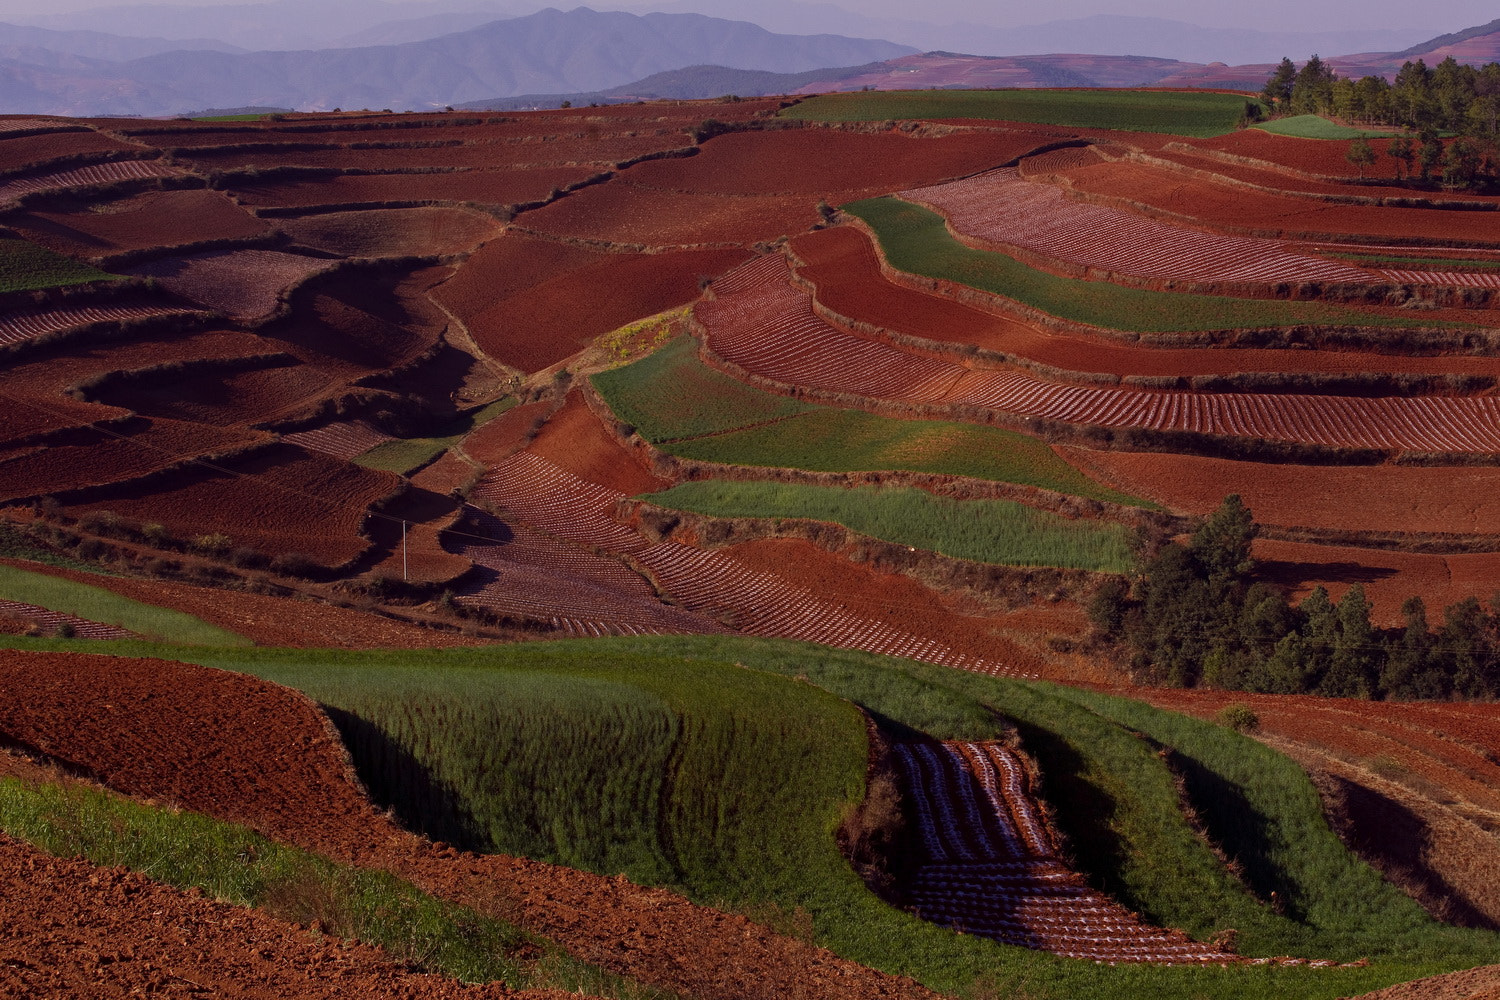 Photograph Red Land - China by SIJANTO NATURE on 500px